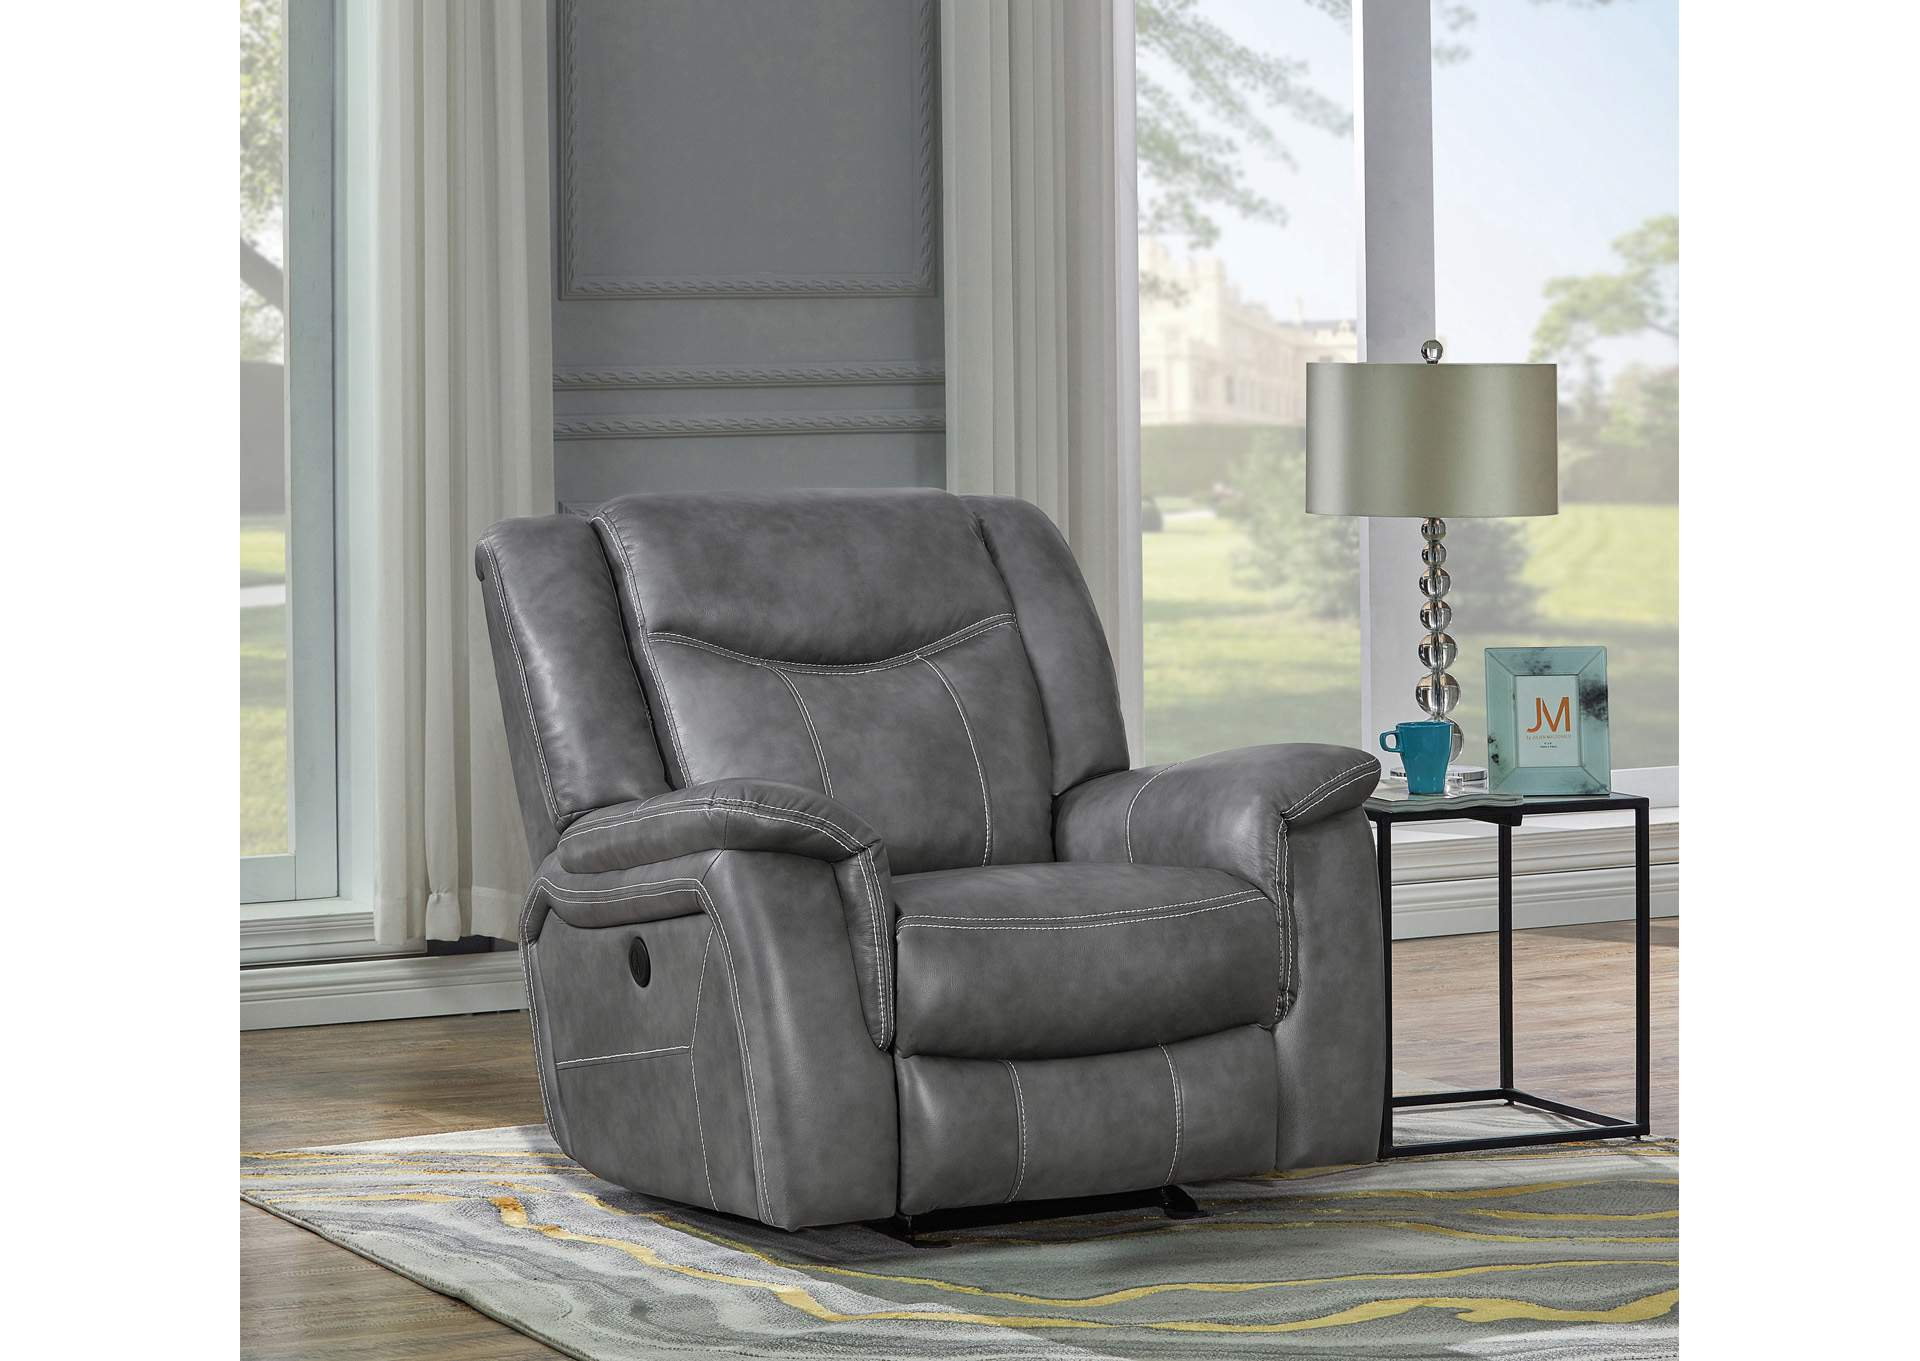 Tundora Conrad Transitional Grey Glider Recliner,Coaster Furniture